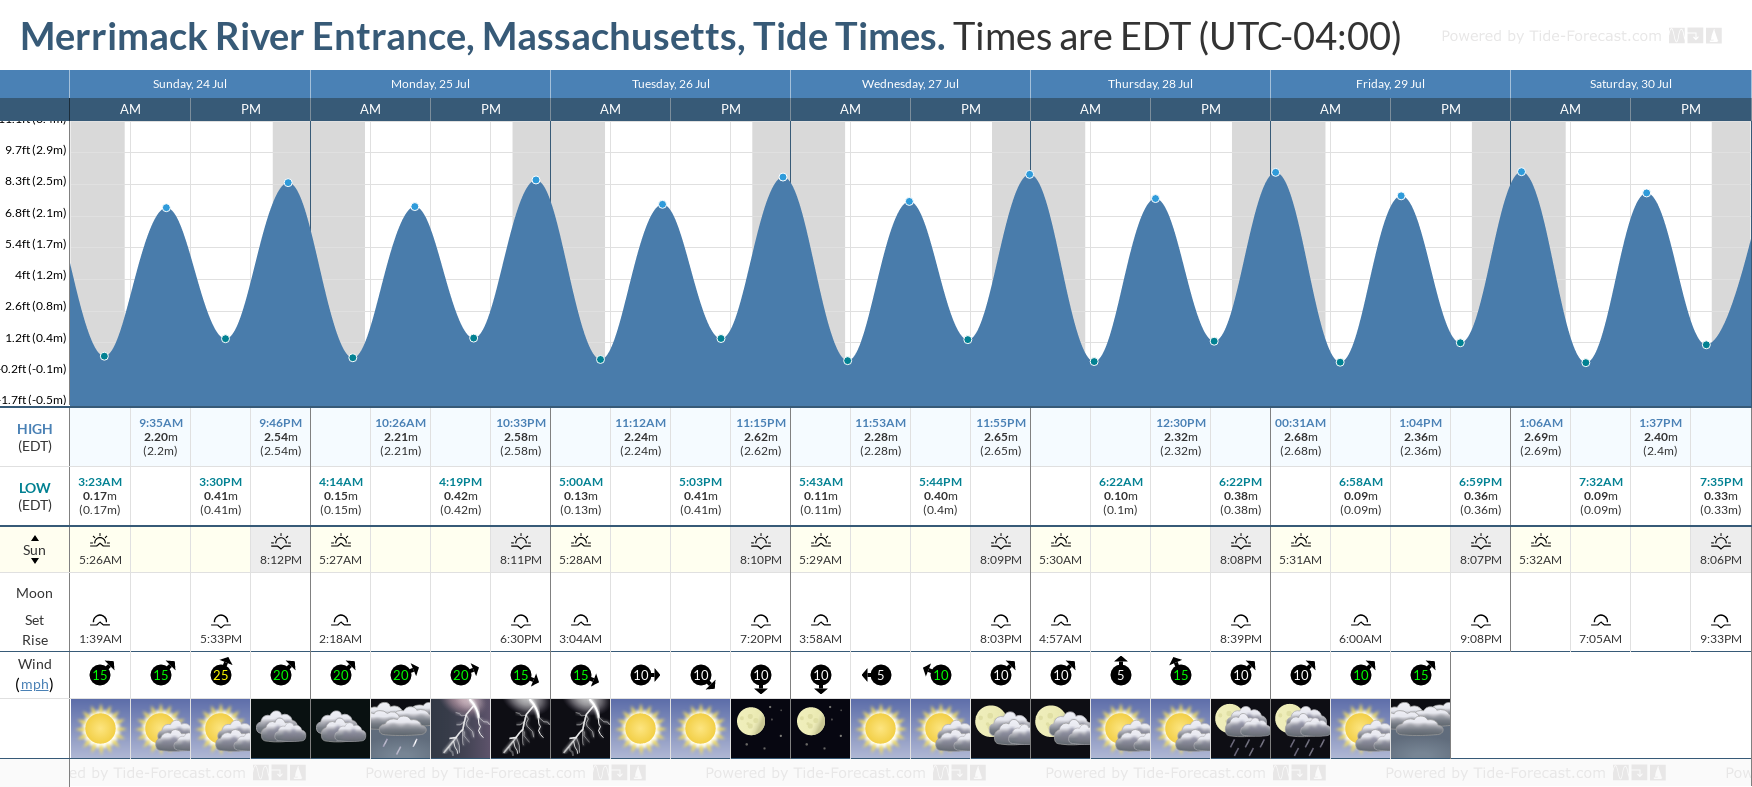 Merrimack River Entrance, Massachusetts Tide Chart including high and low tide tide times for the next 7 days